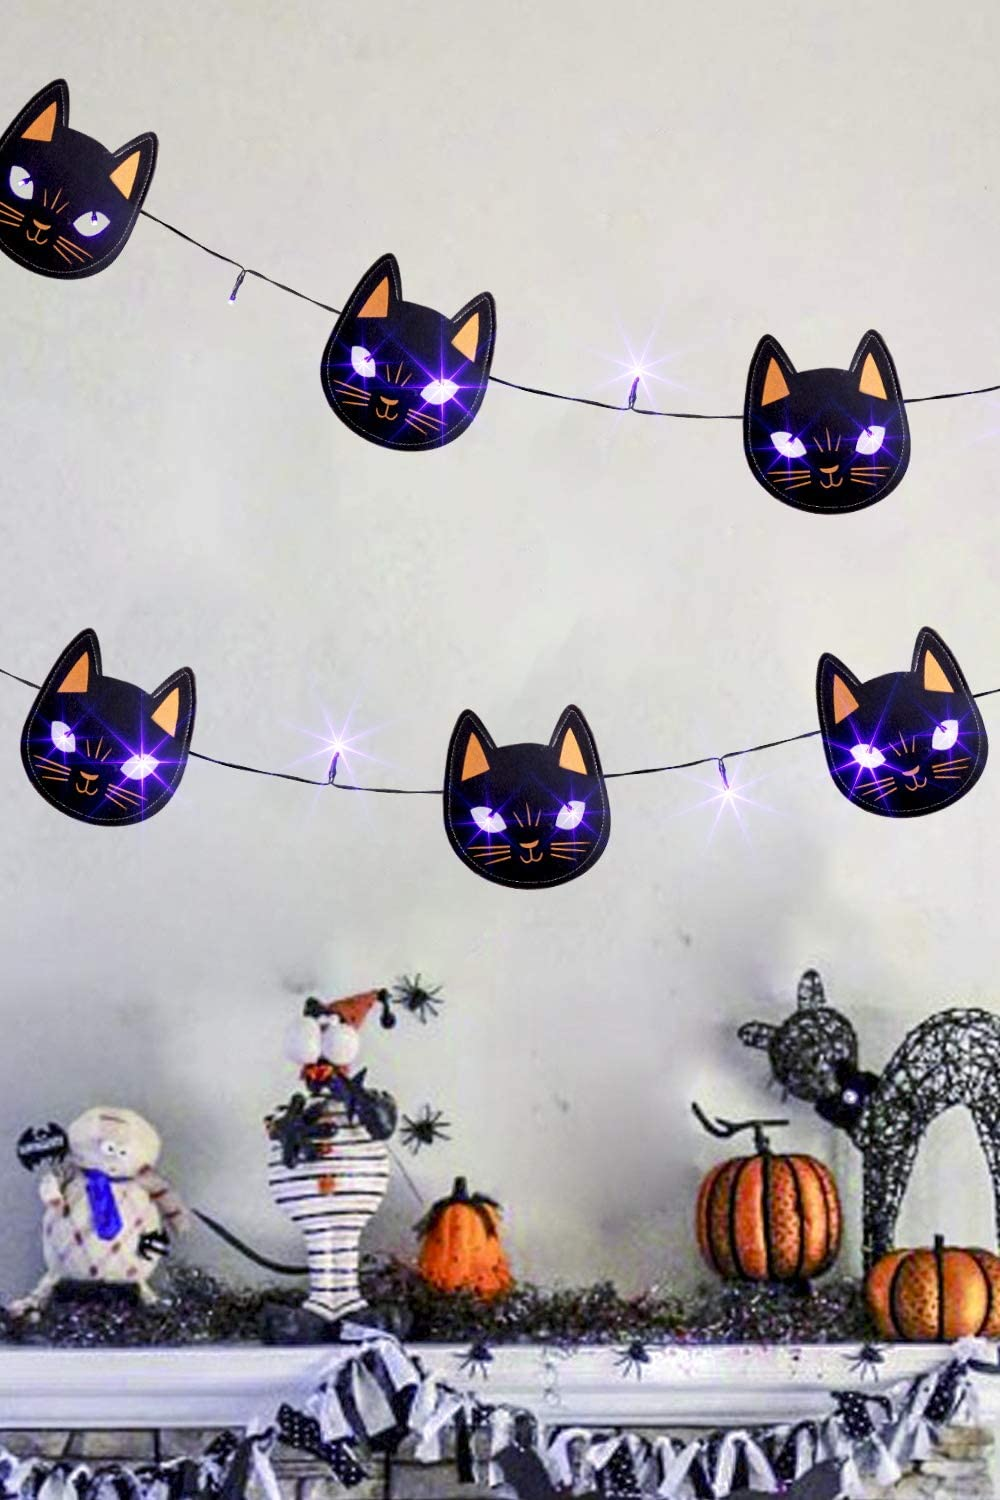 EAMBRITE 5.75 FT 15LT LED Halloween String Lights Fabric Banners Trick or Treat Black Cat and Black Bat Banners Decorations Supplies-Set of 2